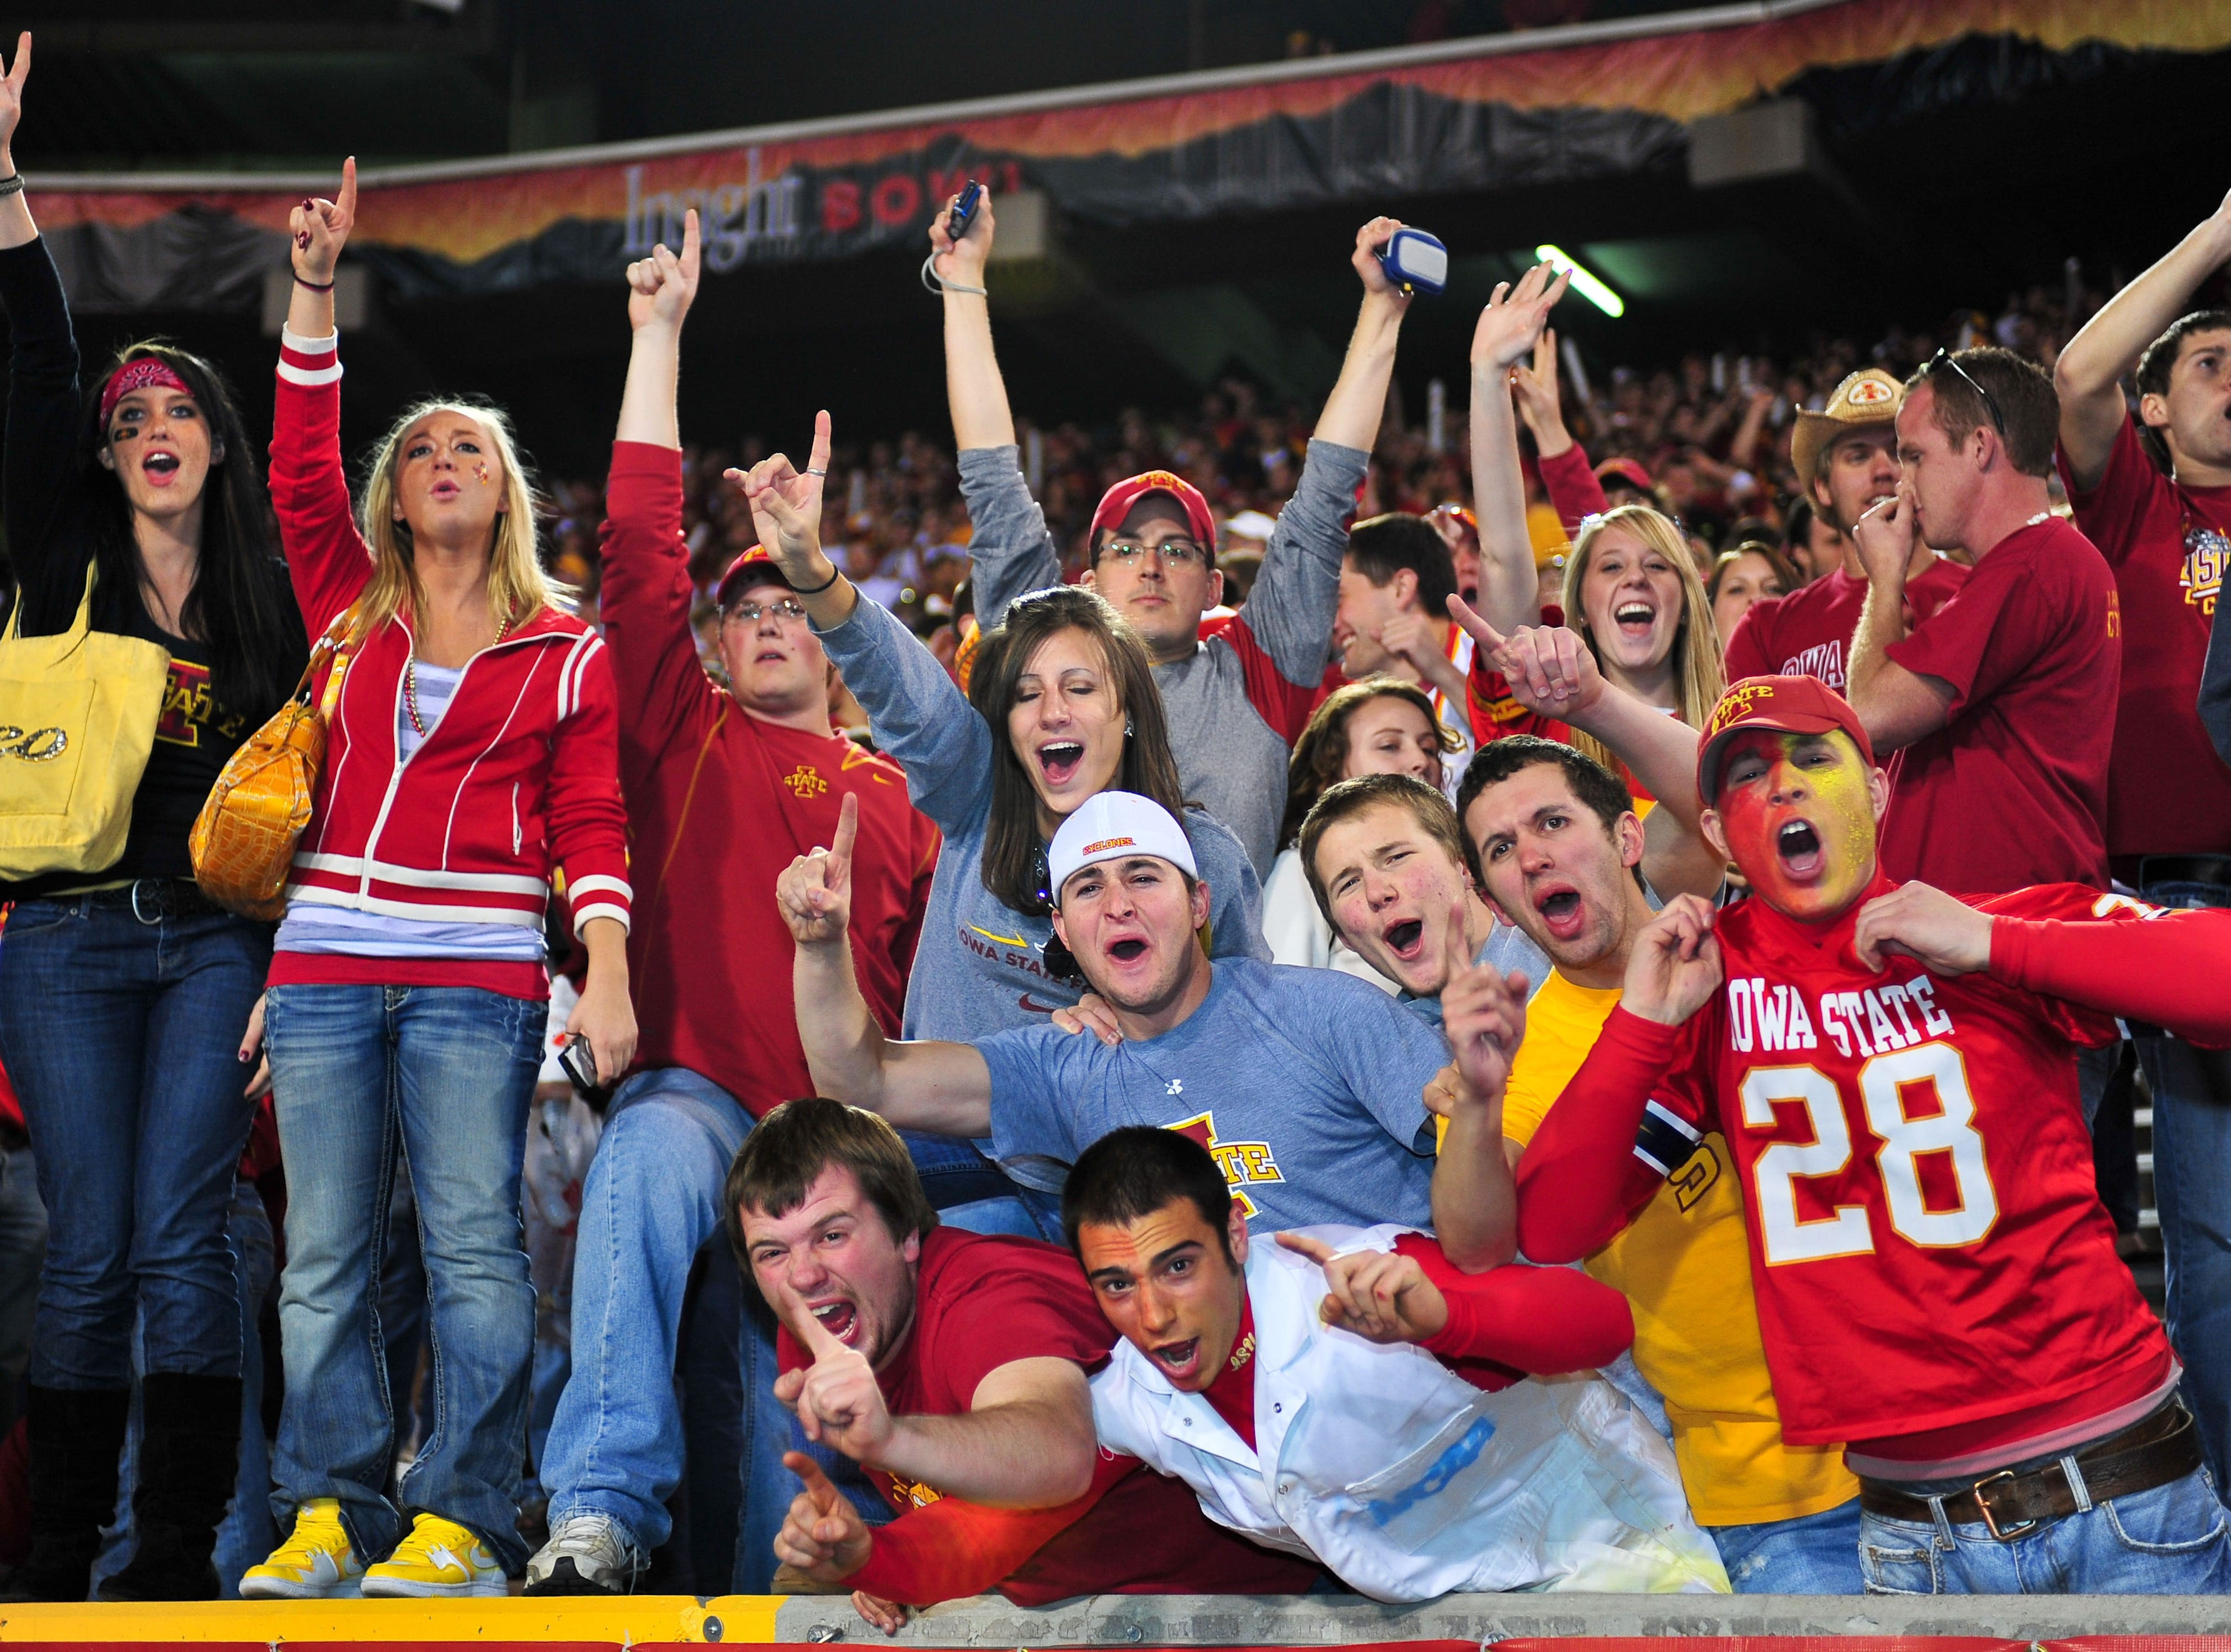 Dec 31, 2009; Tempe, AZ, USA; Iowa State Cyclones fans celebrate their team's 14-13 victory over the Minnesota Golden Gophers in the 2009 Insight Bowl at Sun Devil Stadium.  Mandatory Credit: Chris Morrison-USA TODAY Sports